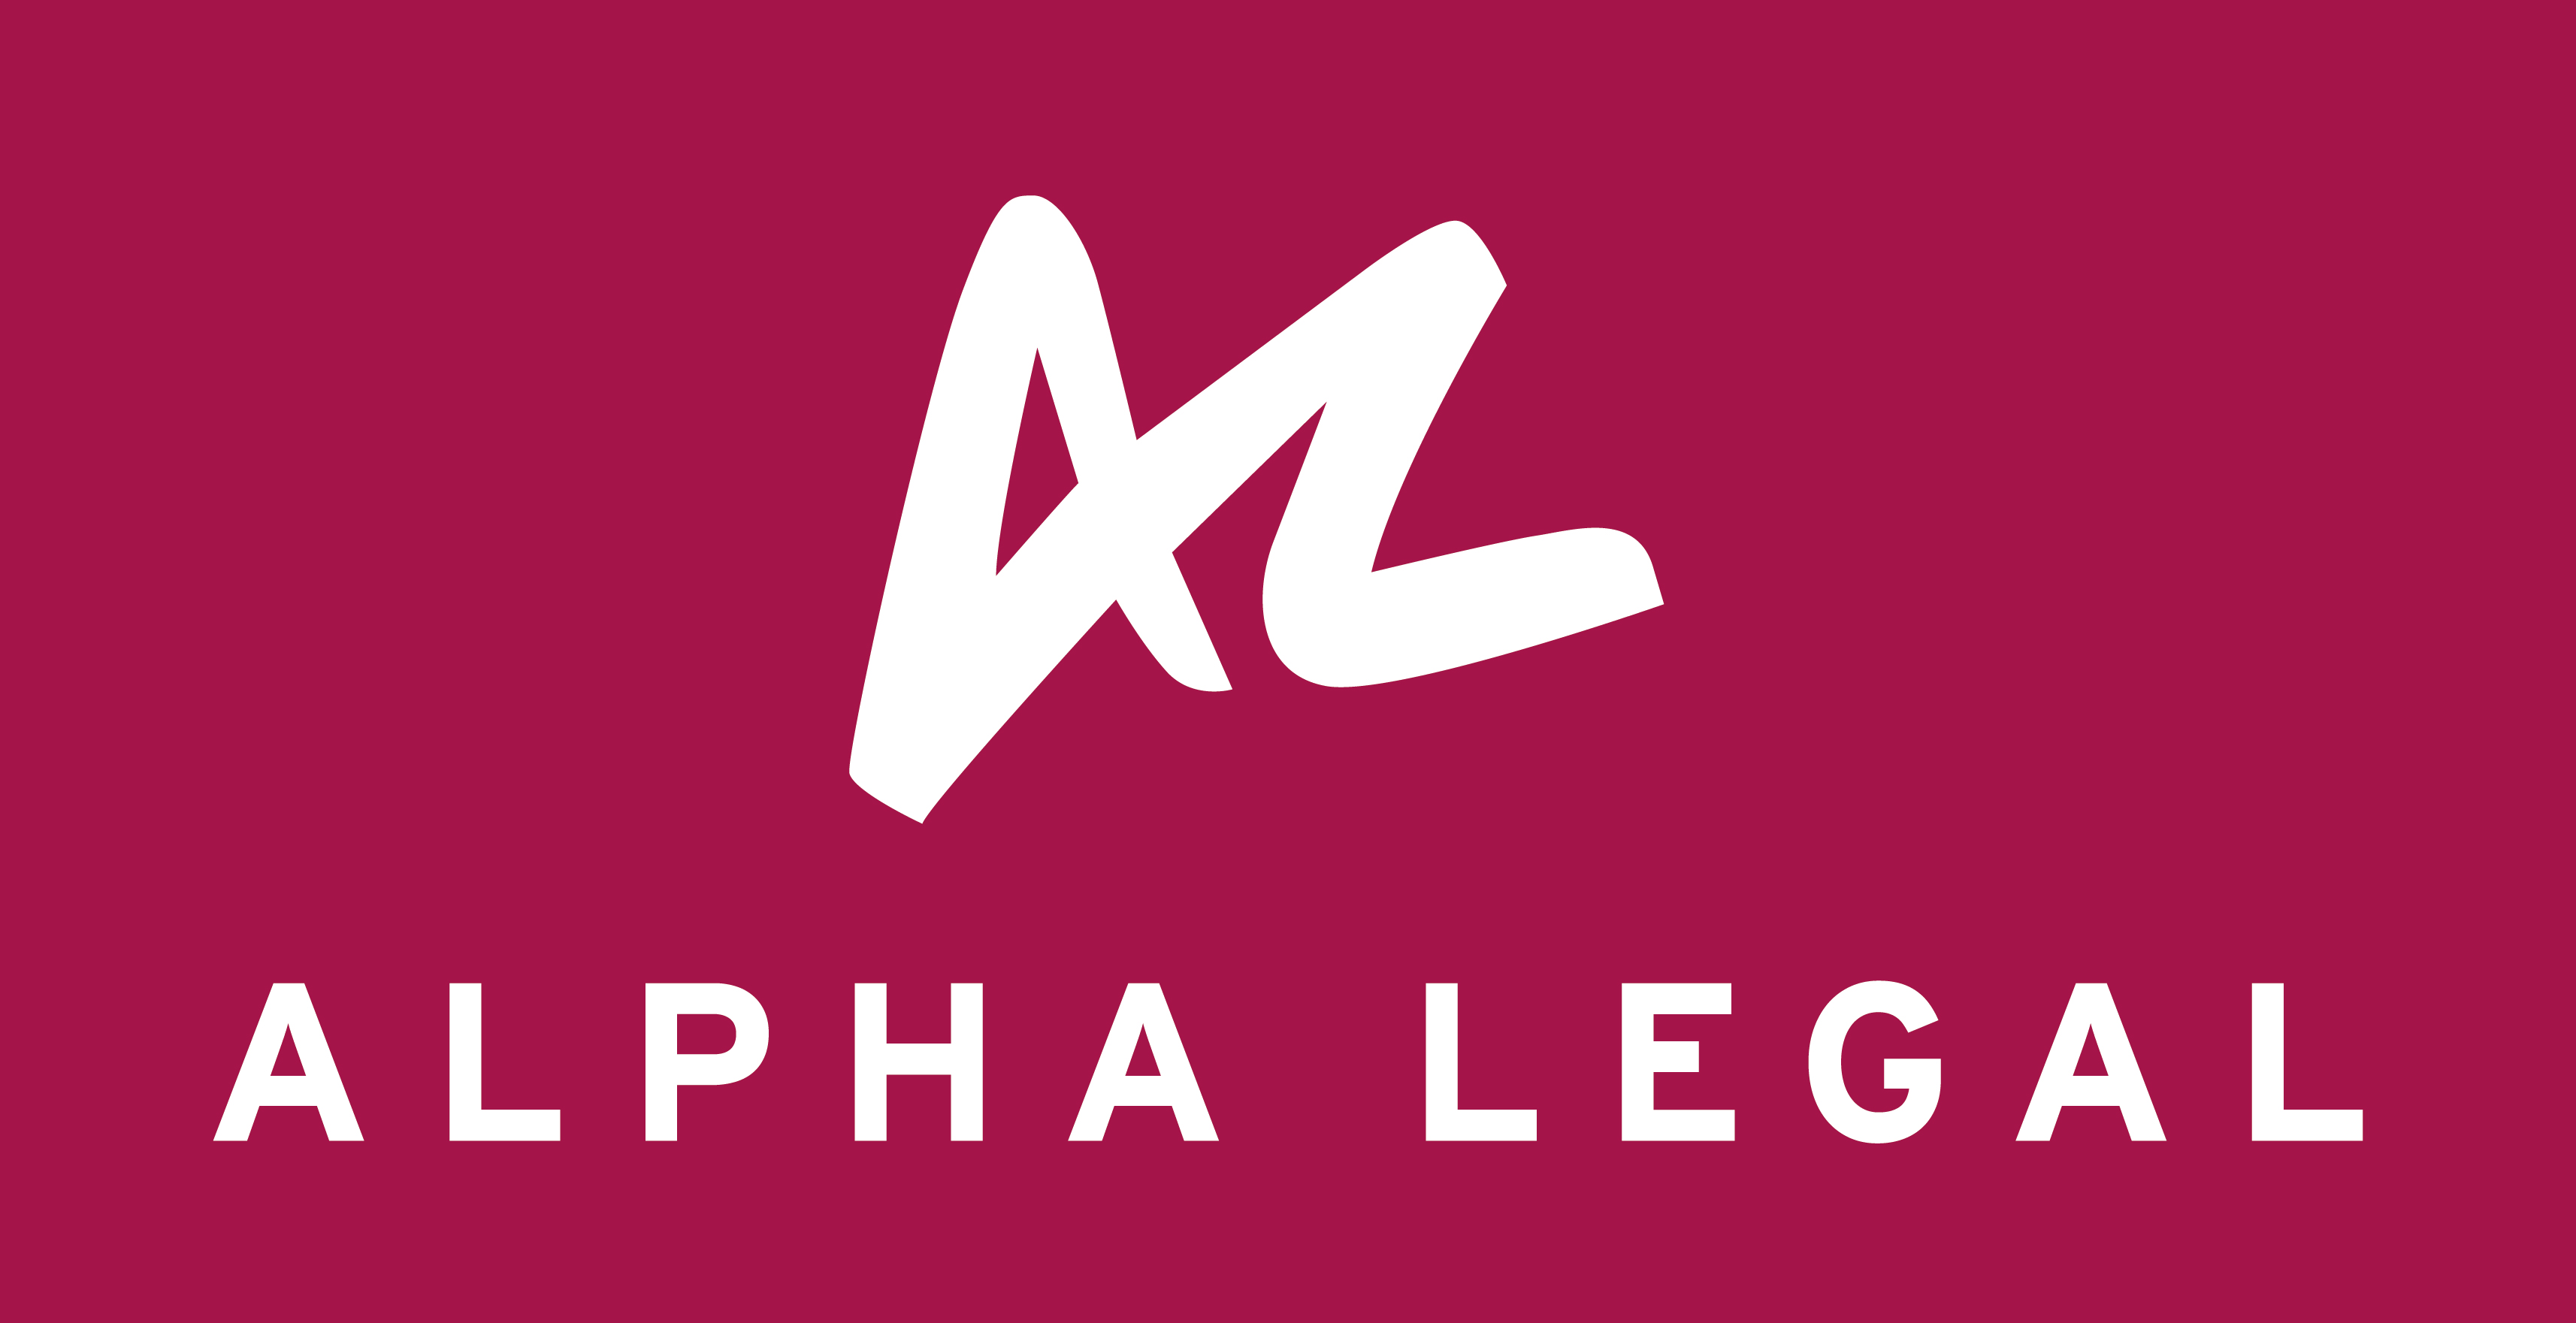 Alpha legal - logo association d'avocats bruxelles